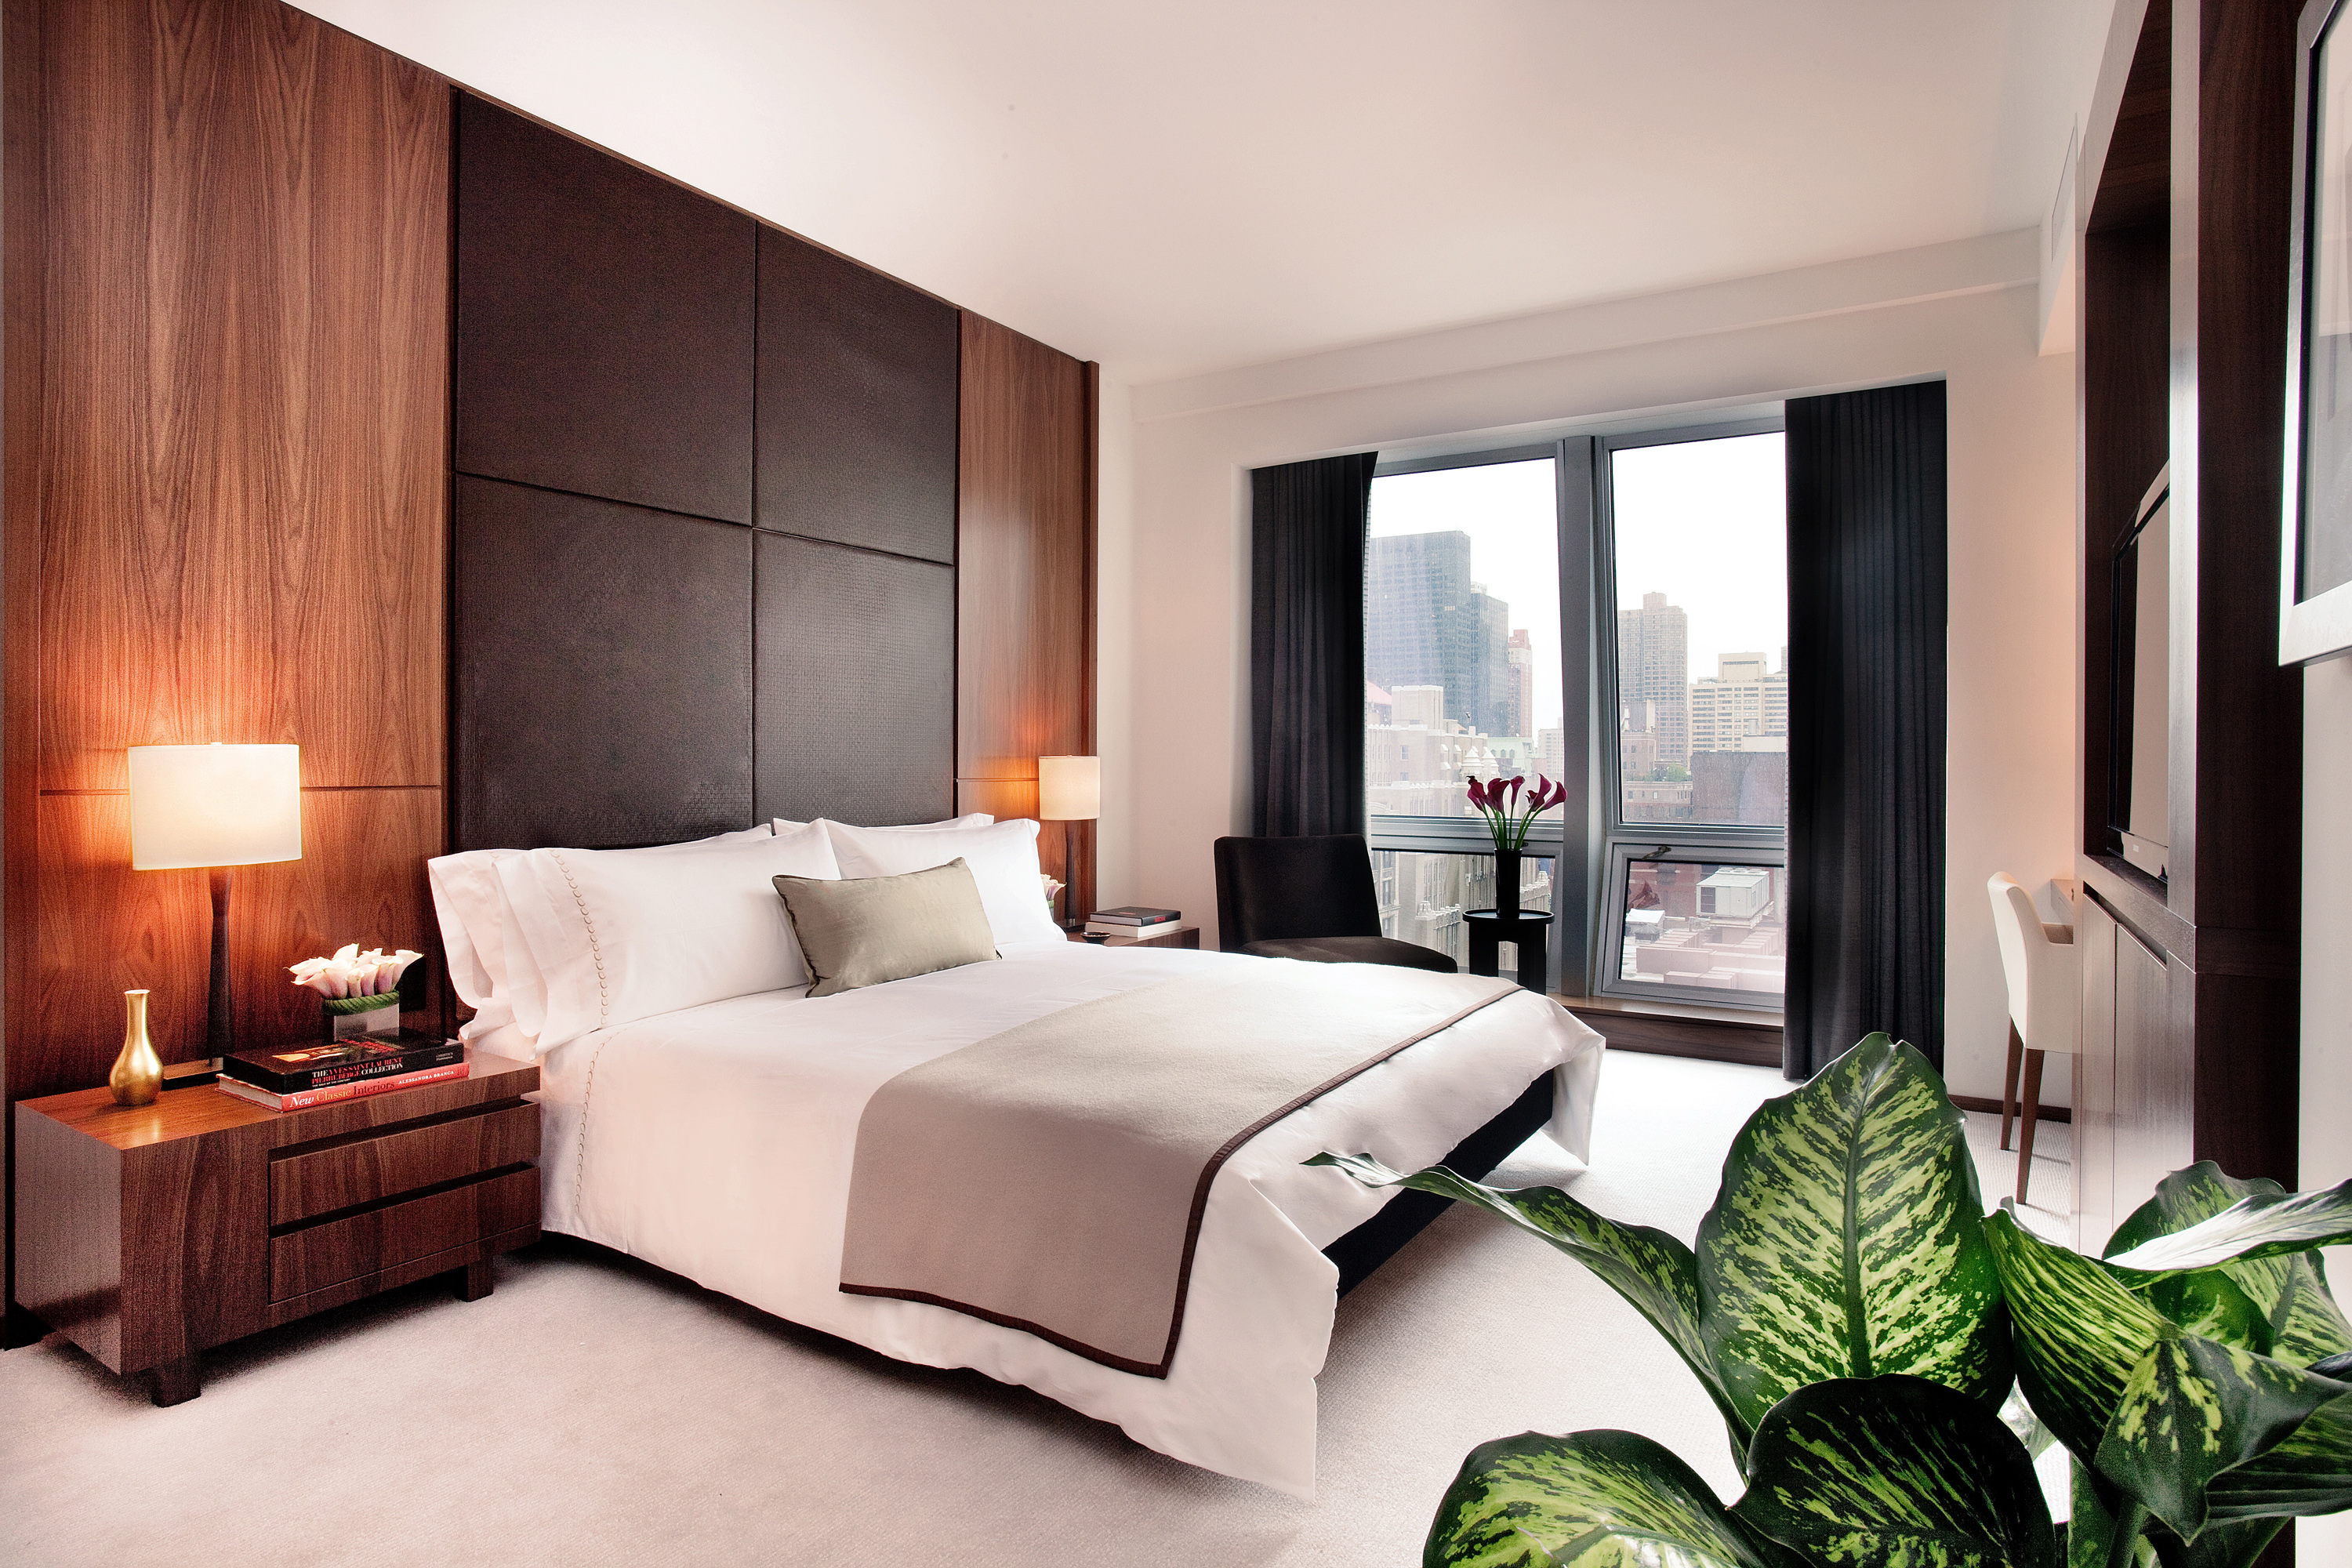 A bedroom in one of The Setai Fifth Avenue Hotel's suites.